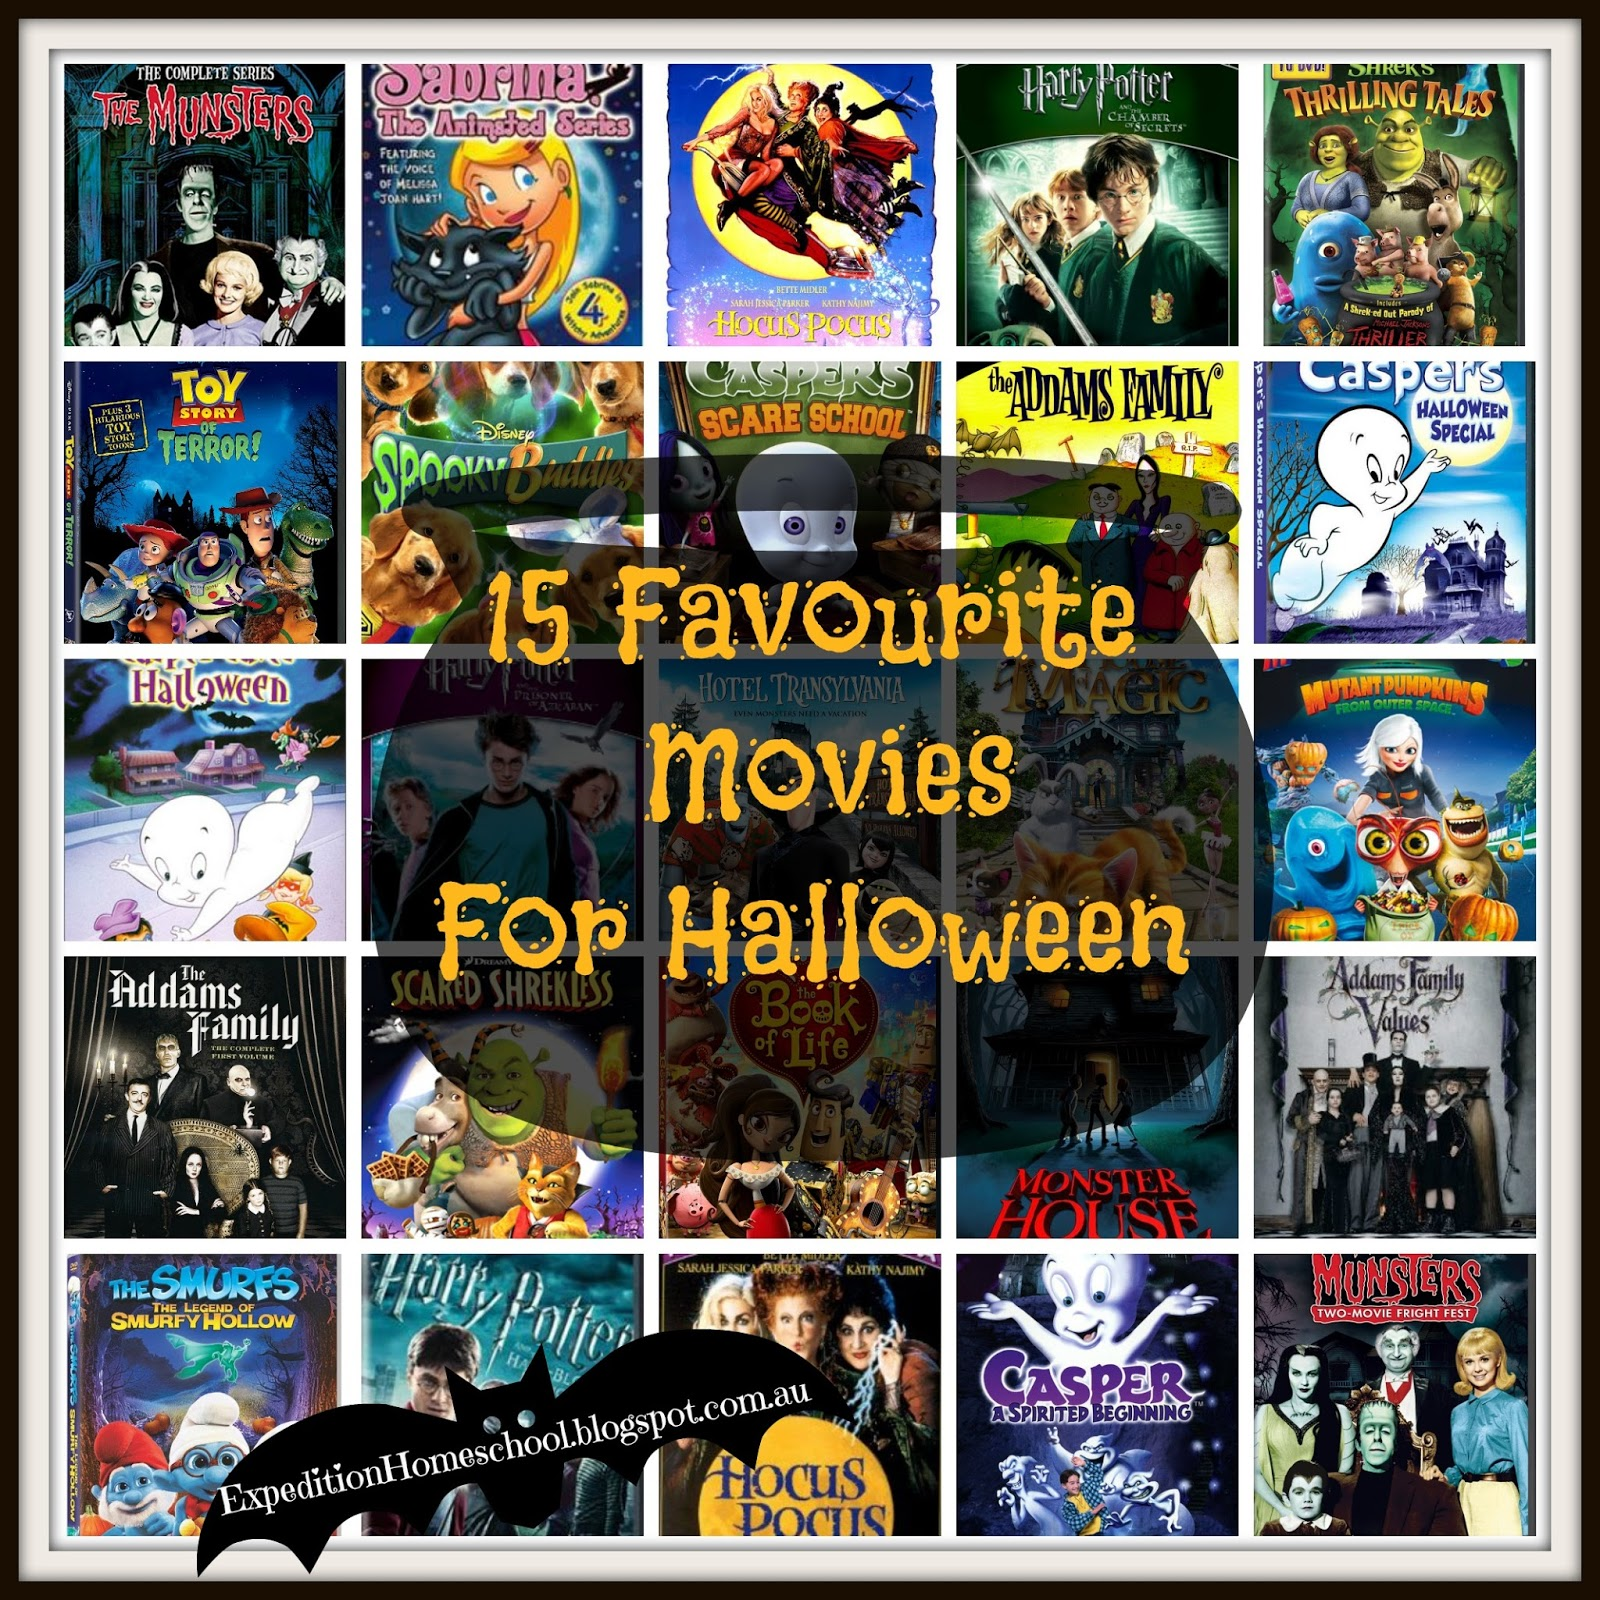 expedition homeschool: 15 halloween movie favourites for kids